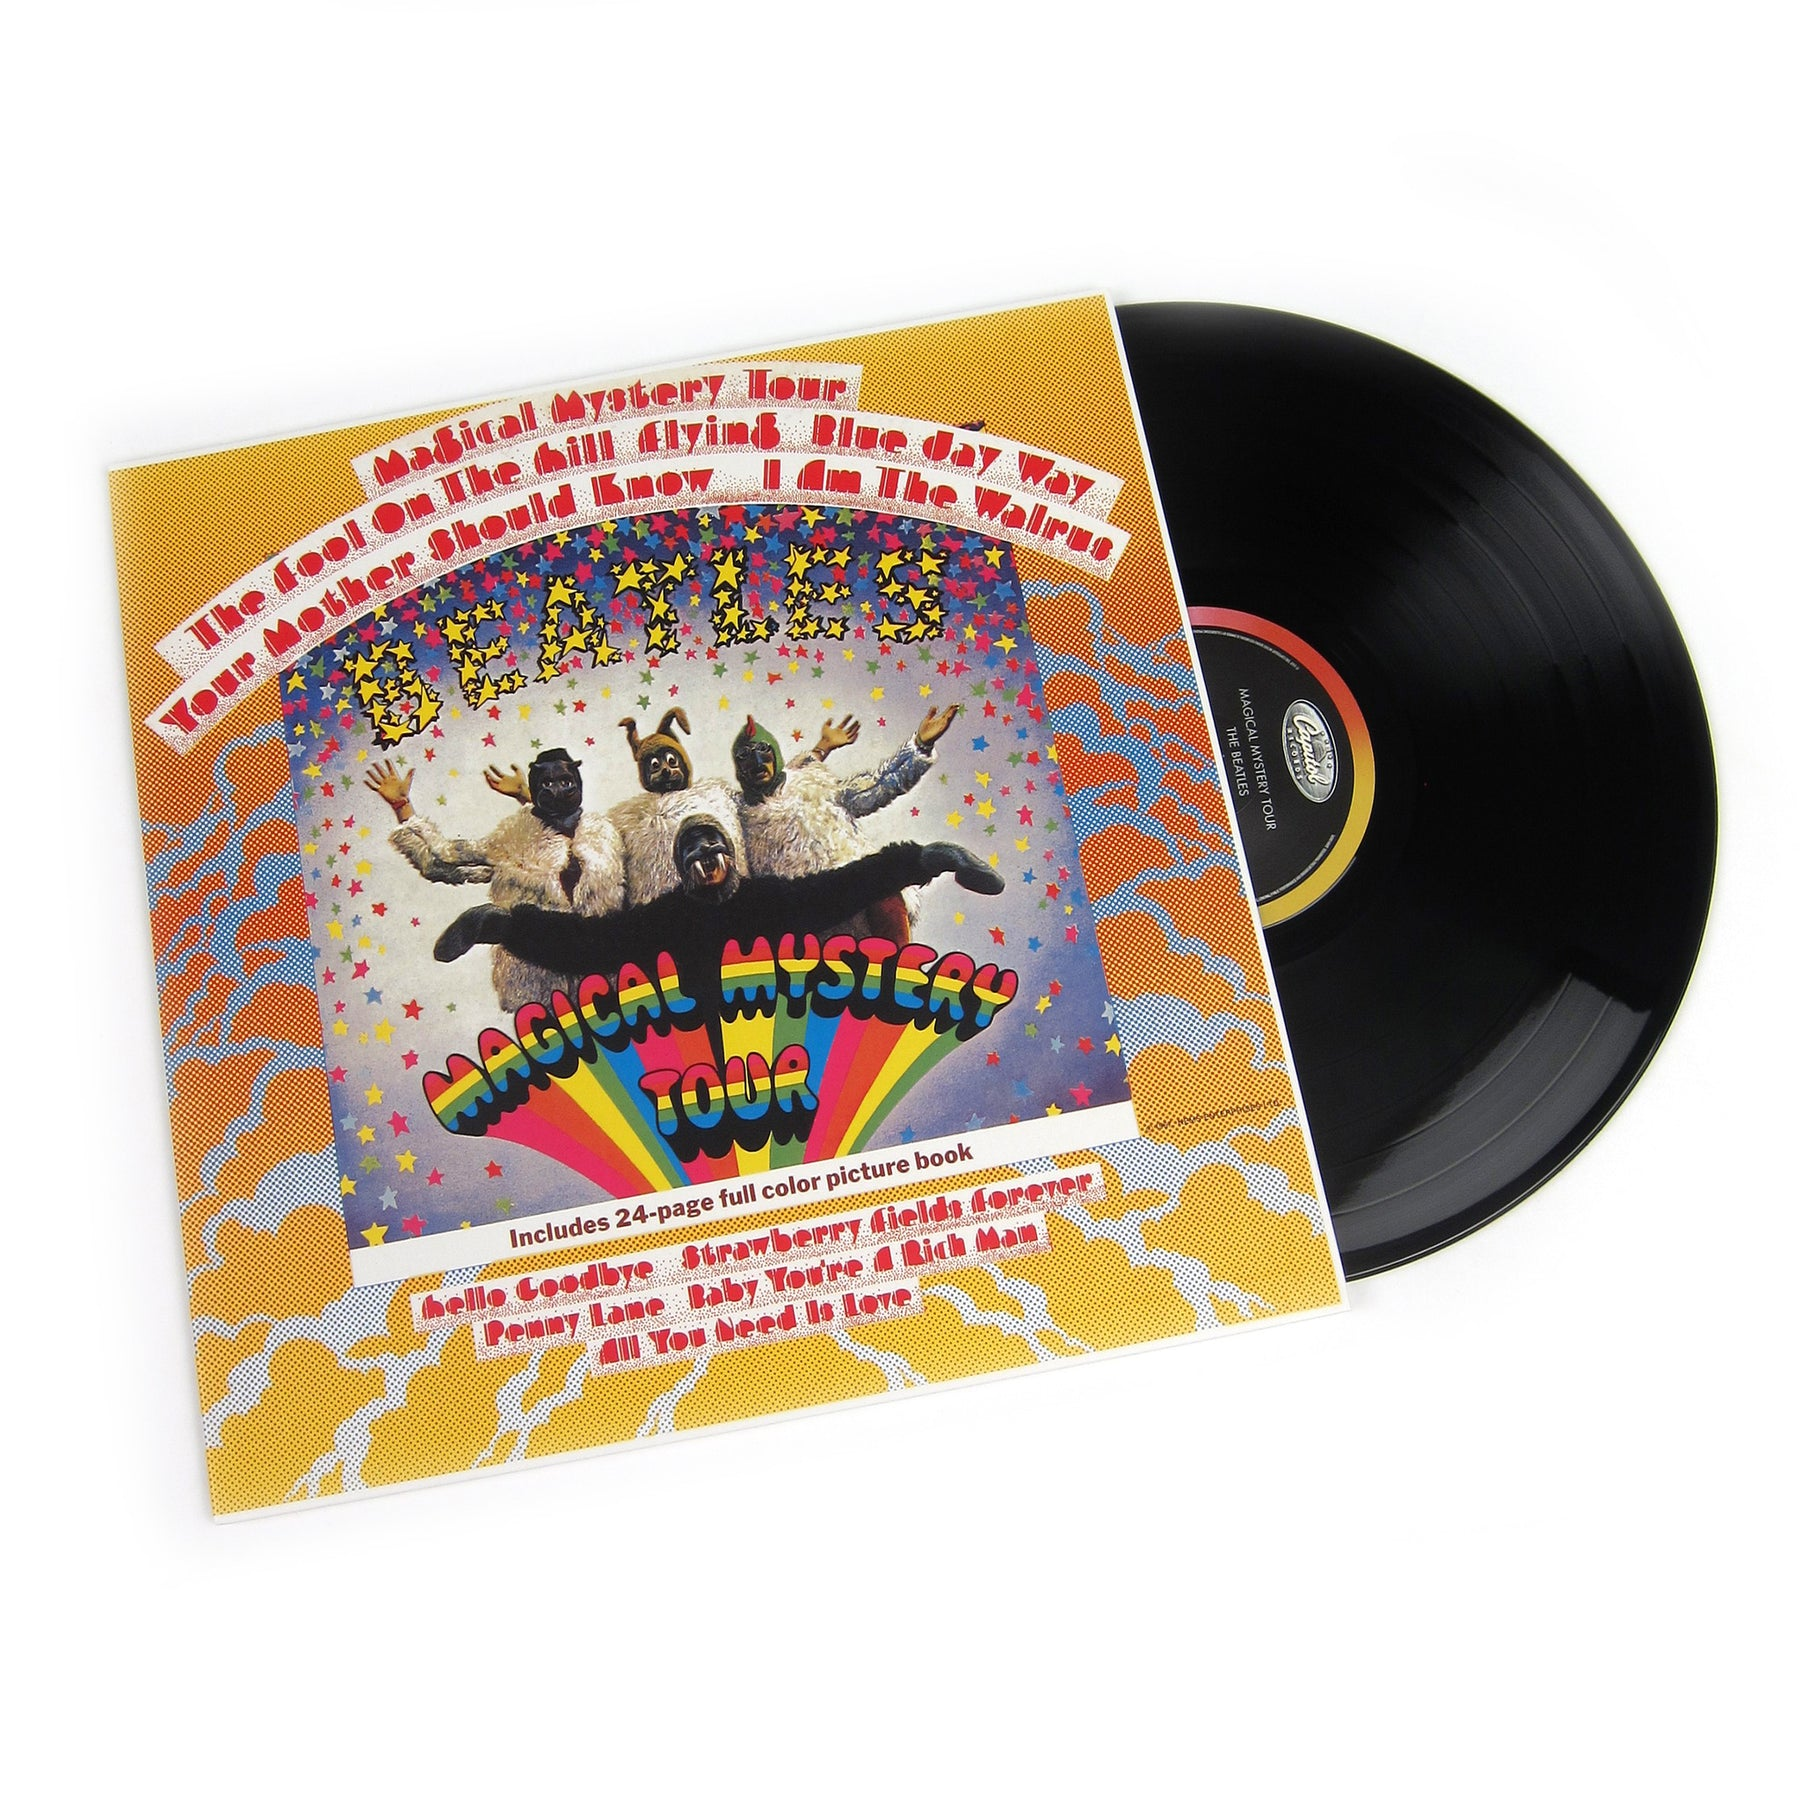 The Beatles Magical Mystery Tour Vinyl In Mono 180g